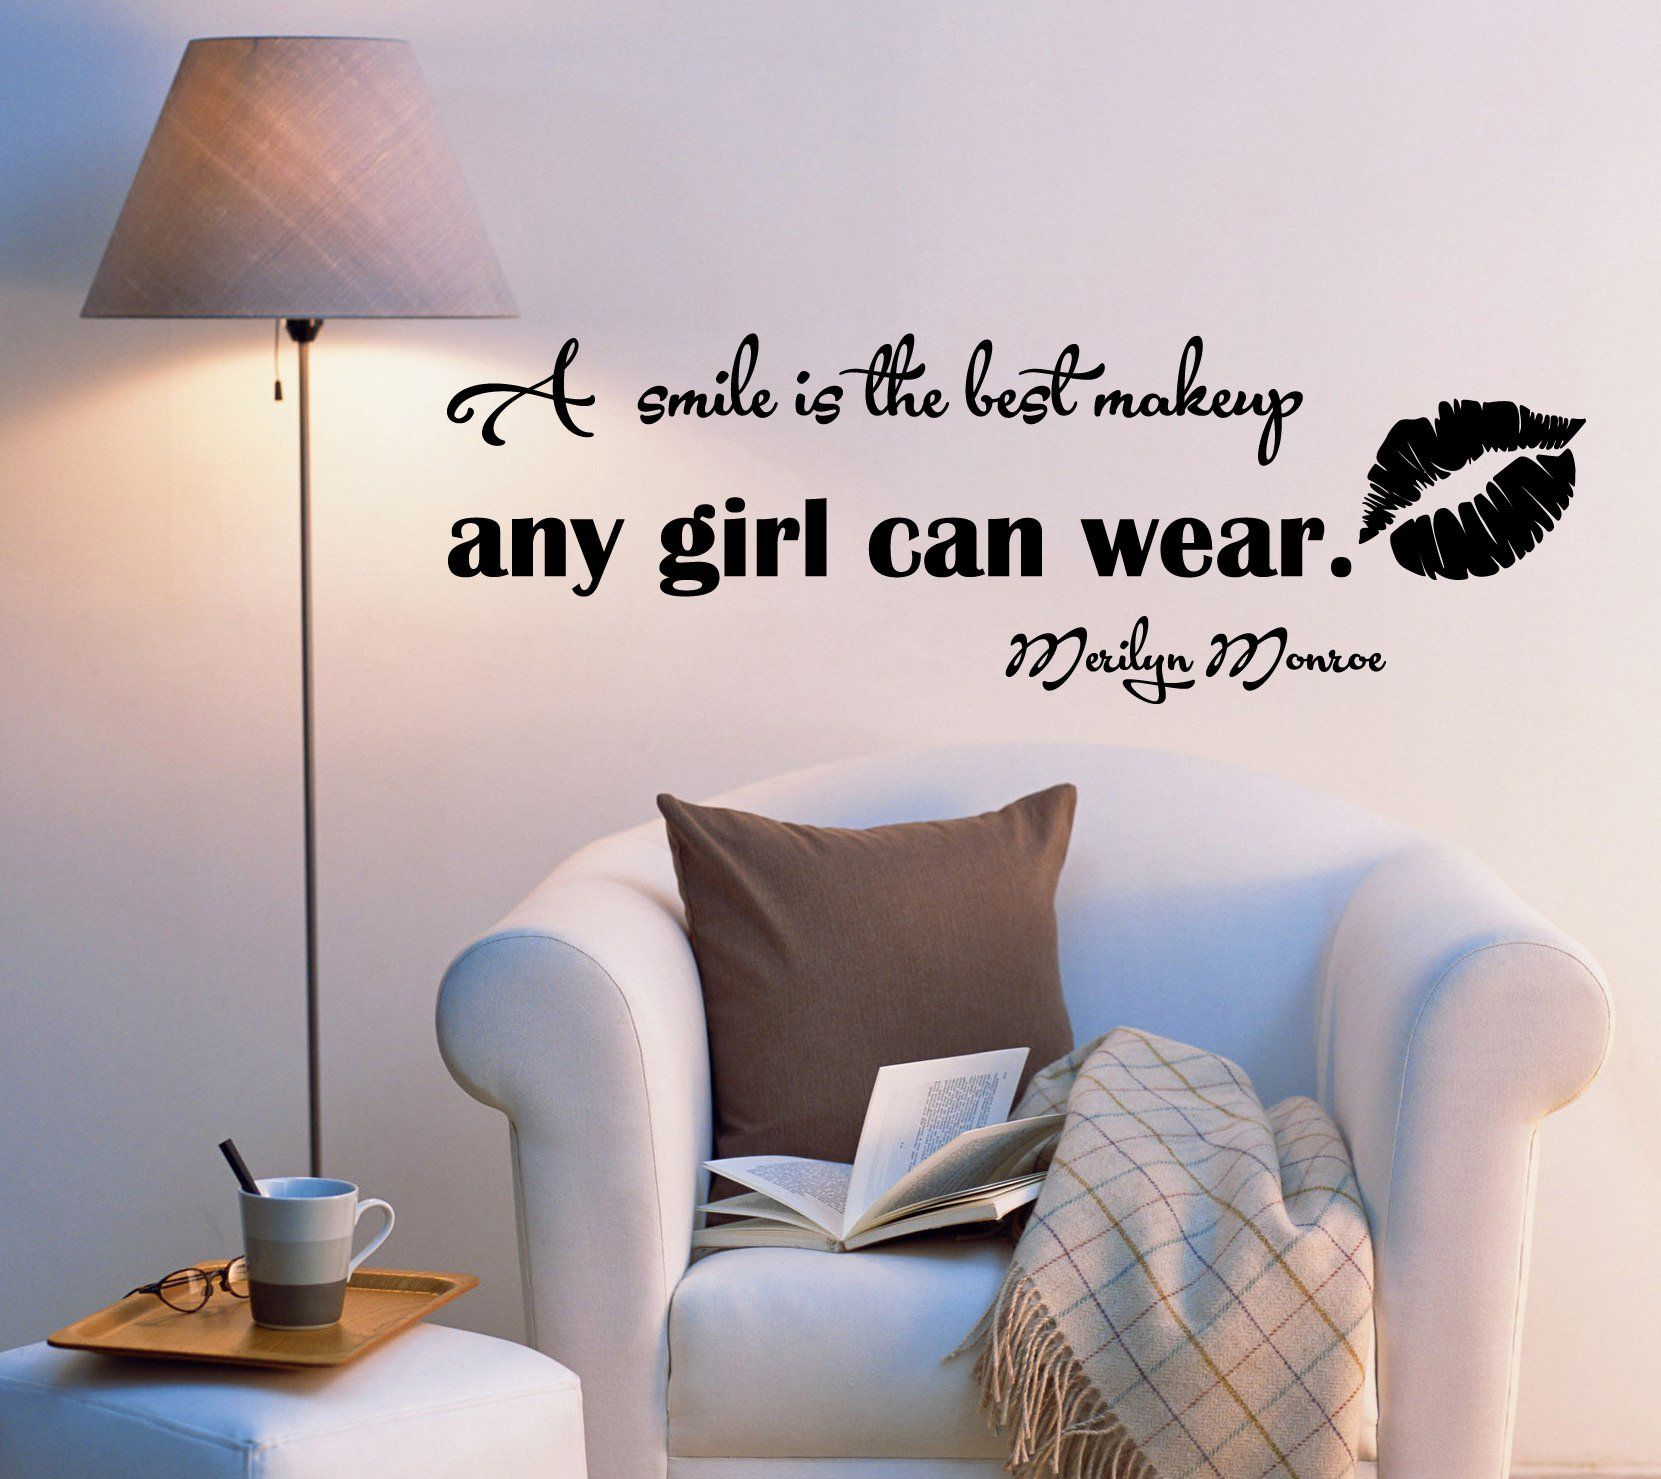 Vinyl wall decal motivation celebrity quote words letters about vinyl wall decal motivation celebrity quote words letters about beauty monroe inspiring stickers 2004ig 225 amipublicfo Image collections